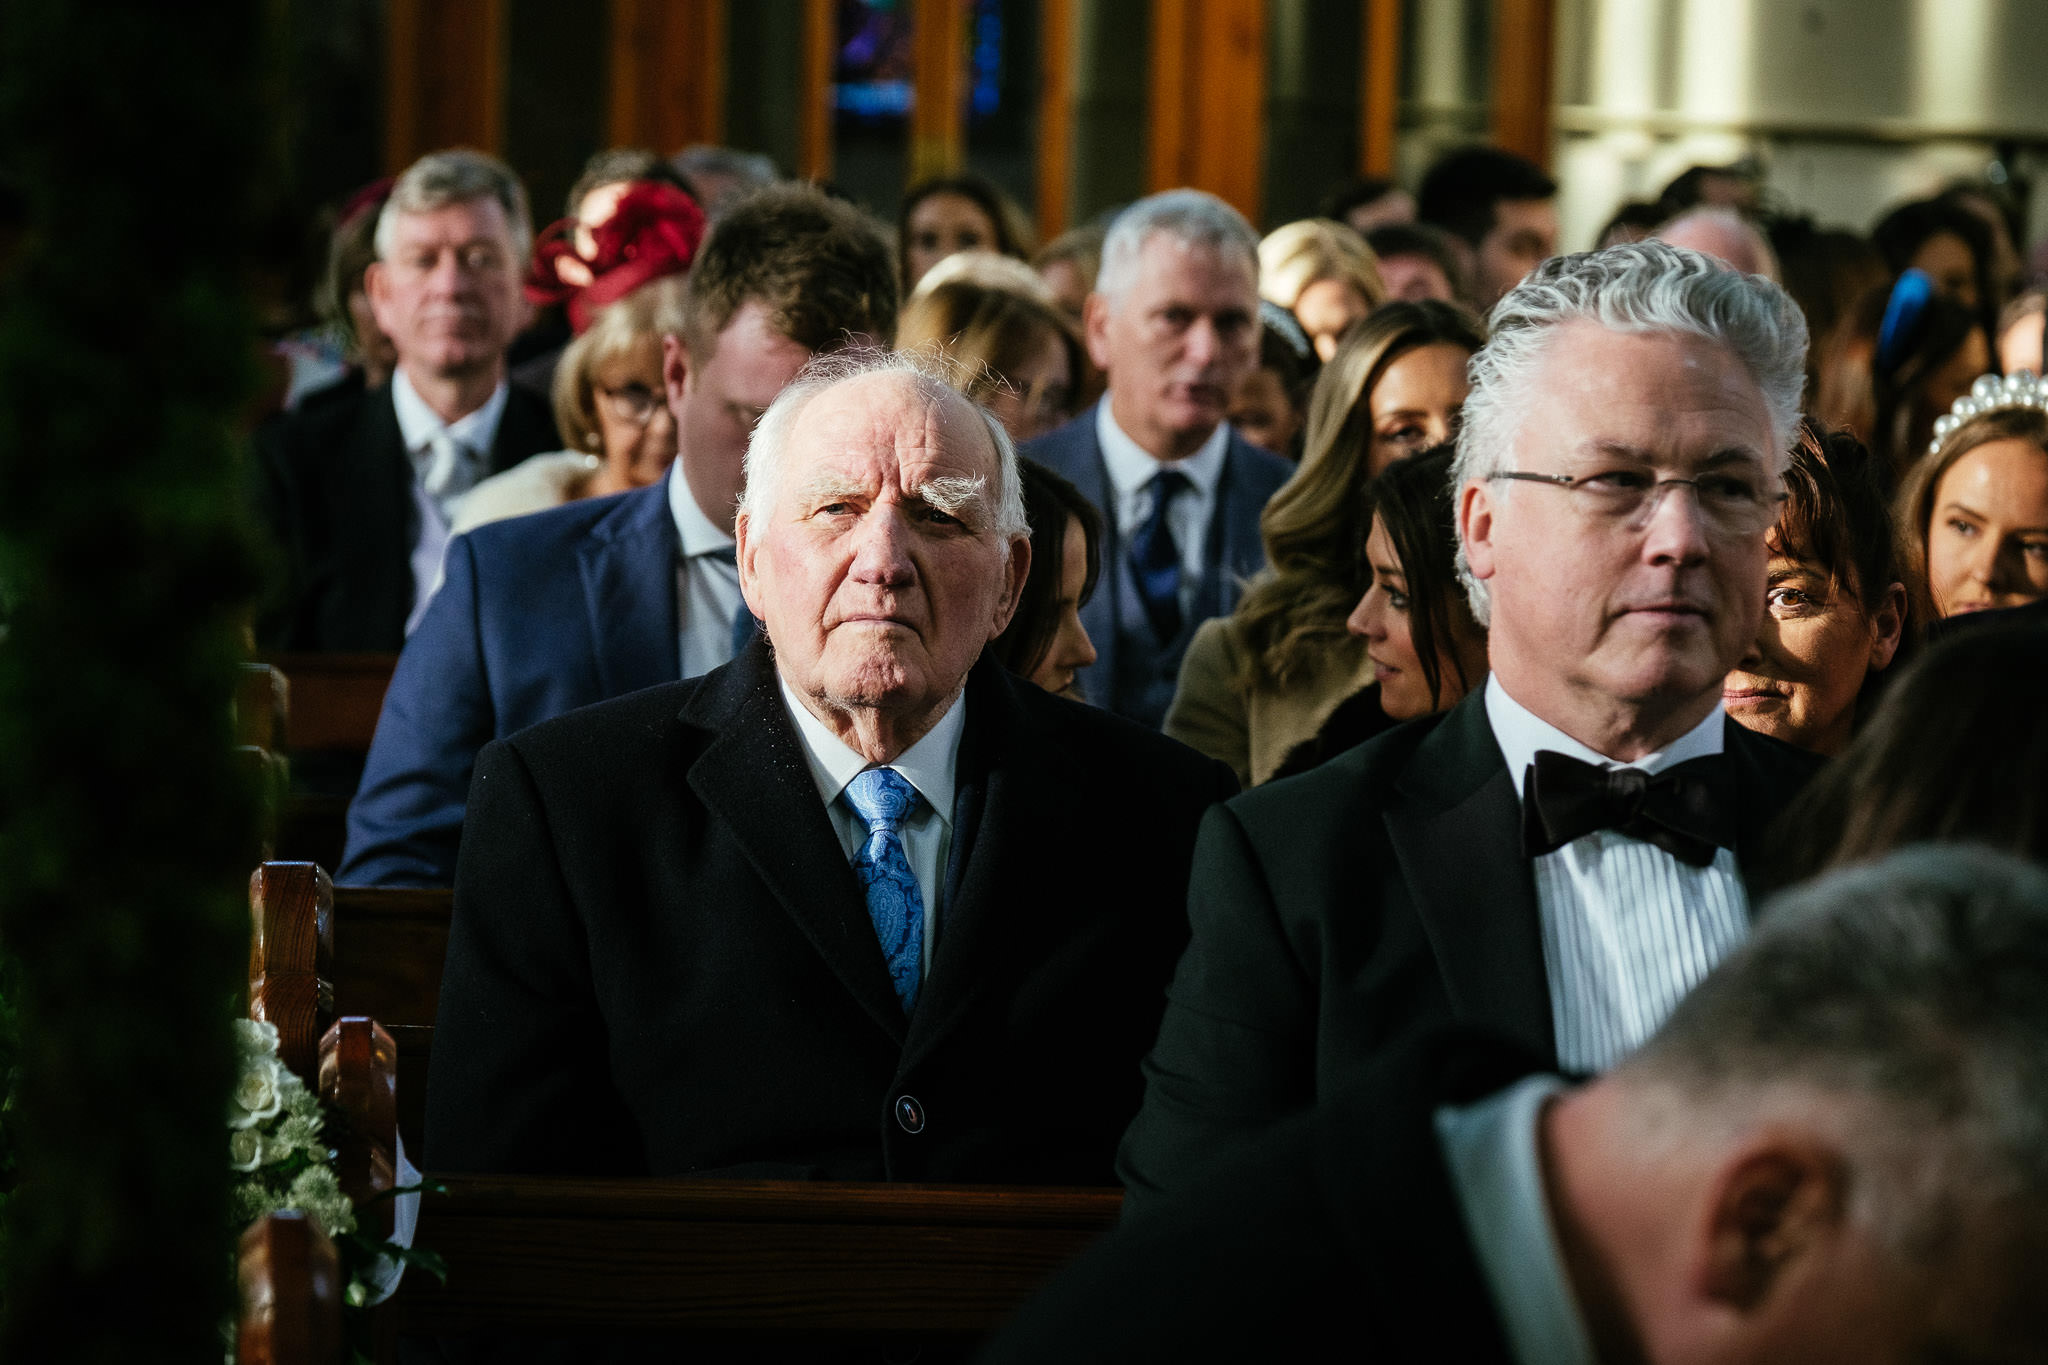 grandfather of bride waiting in church